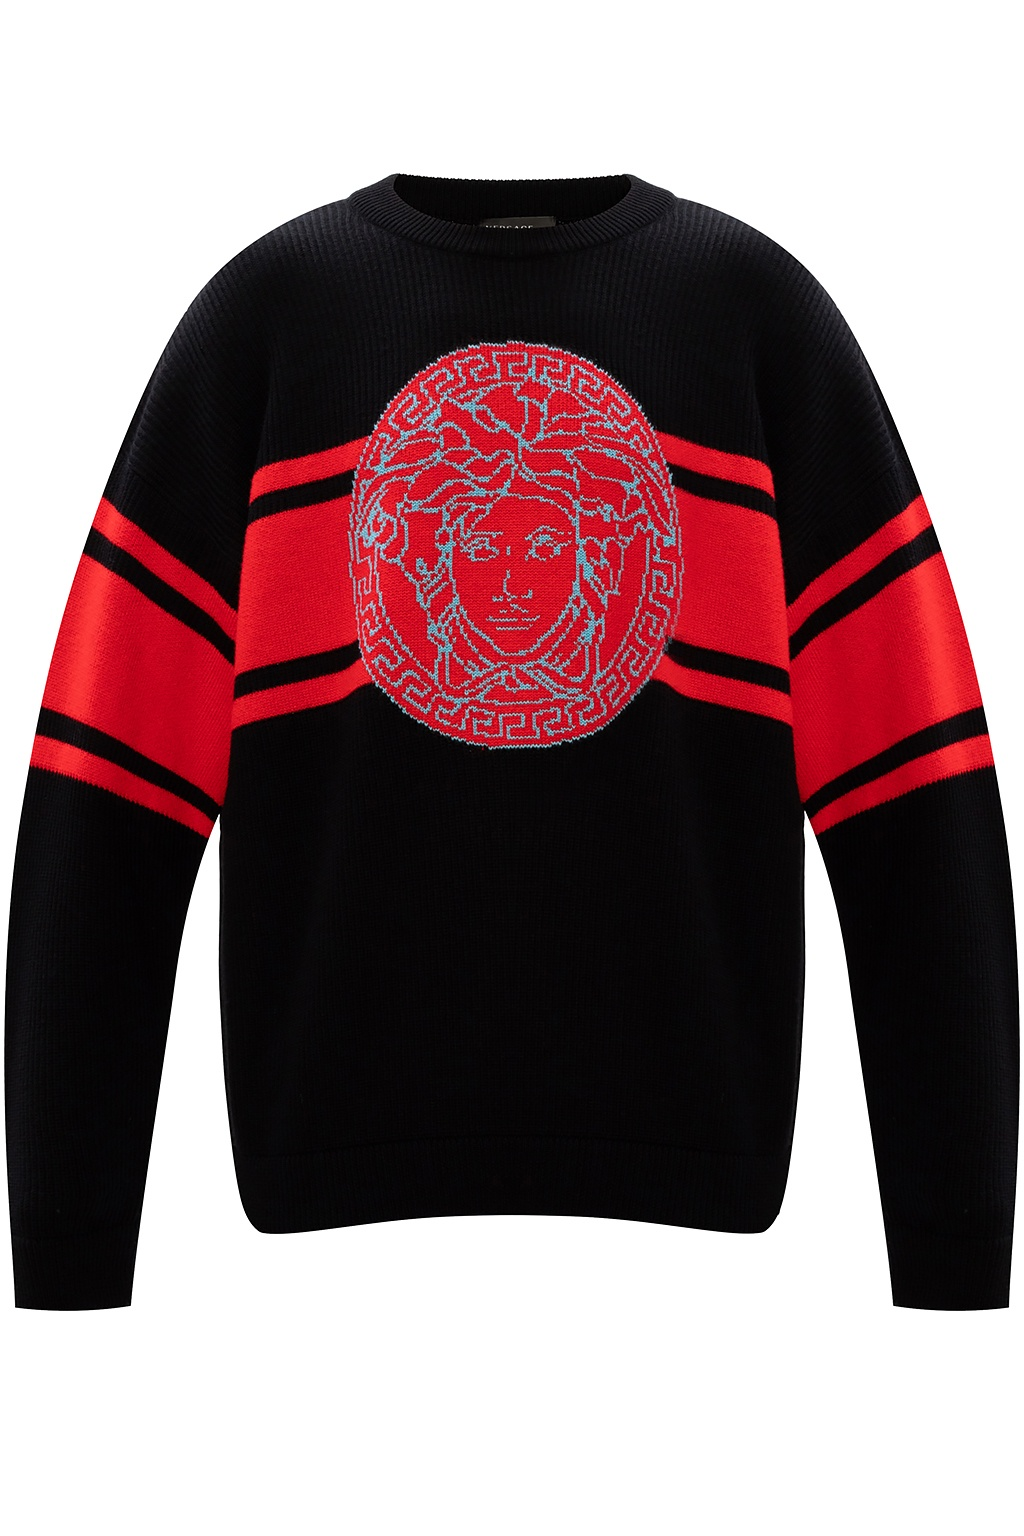 Versace Wool sweater with logo